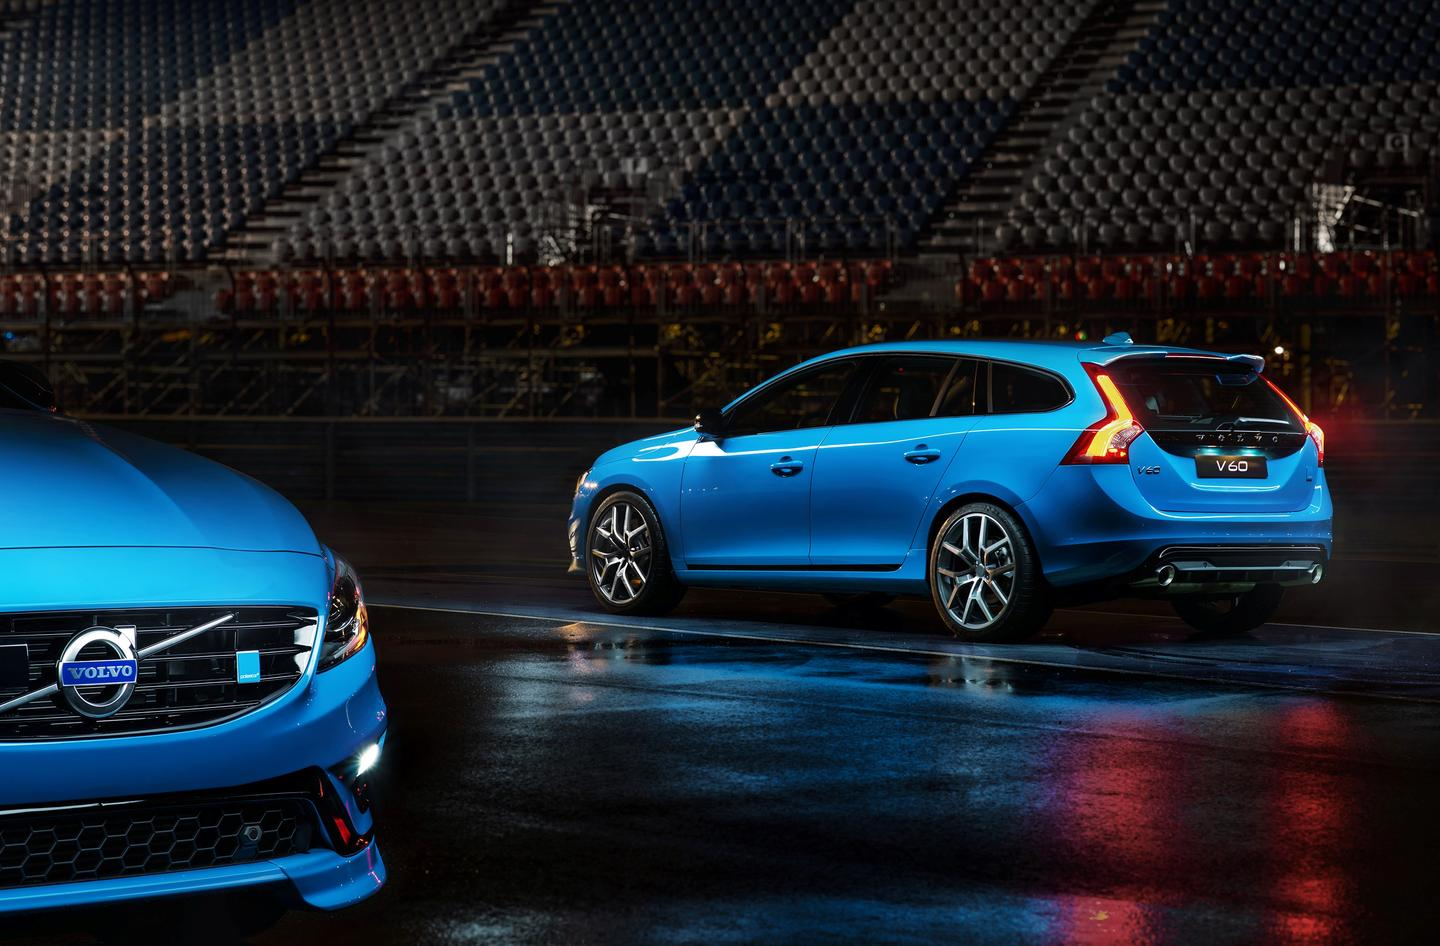 The V60 Polestar and the S60 go on sale next year